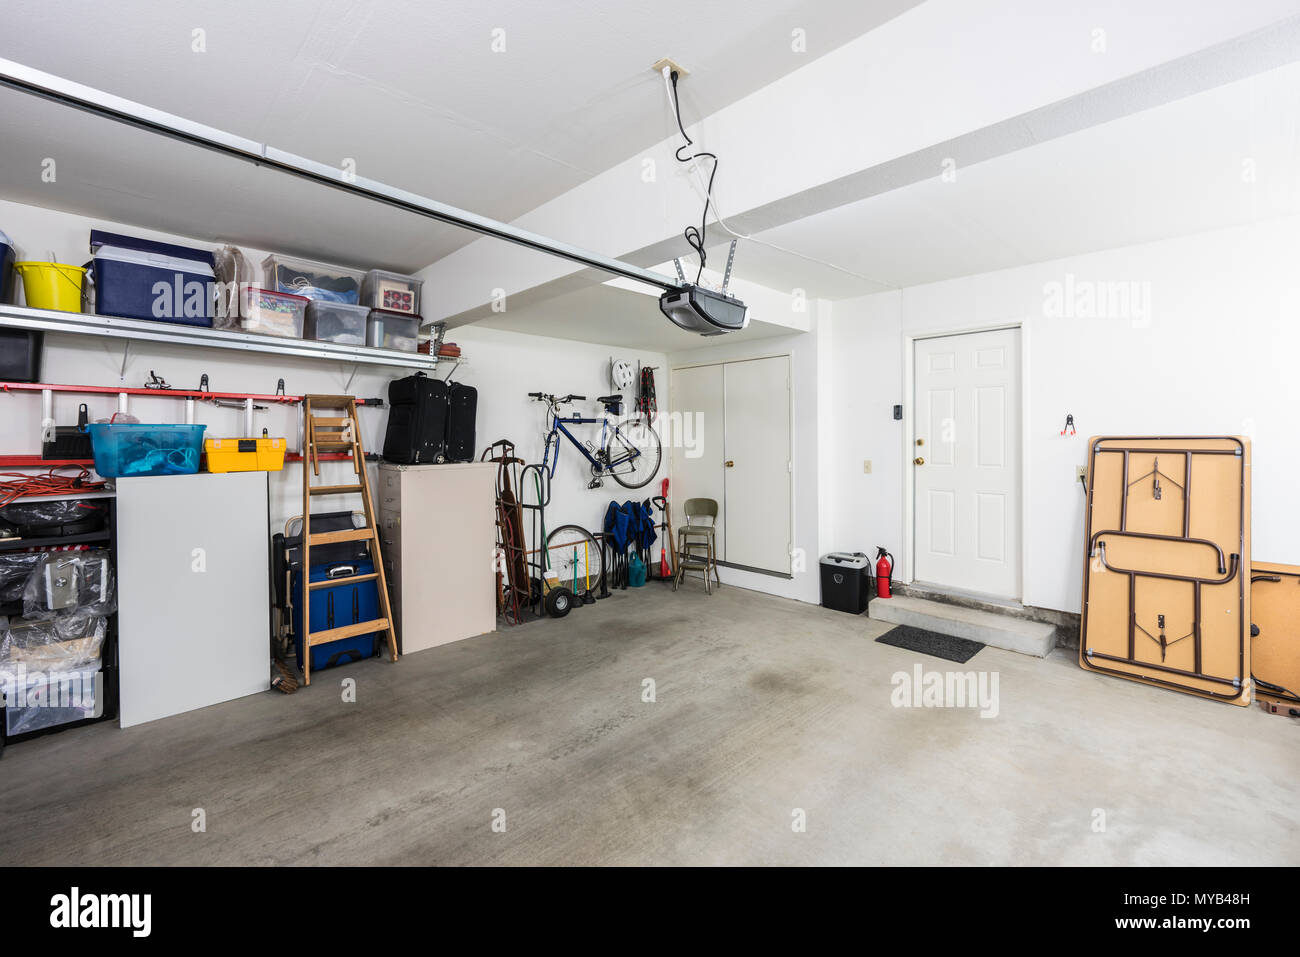 Clean organized suburban residential two car garage with tools, file cabinets and sports equipment. - Stock Image